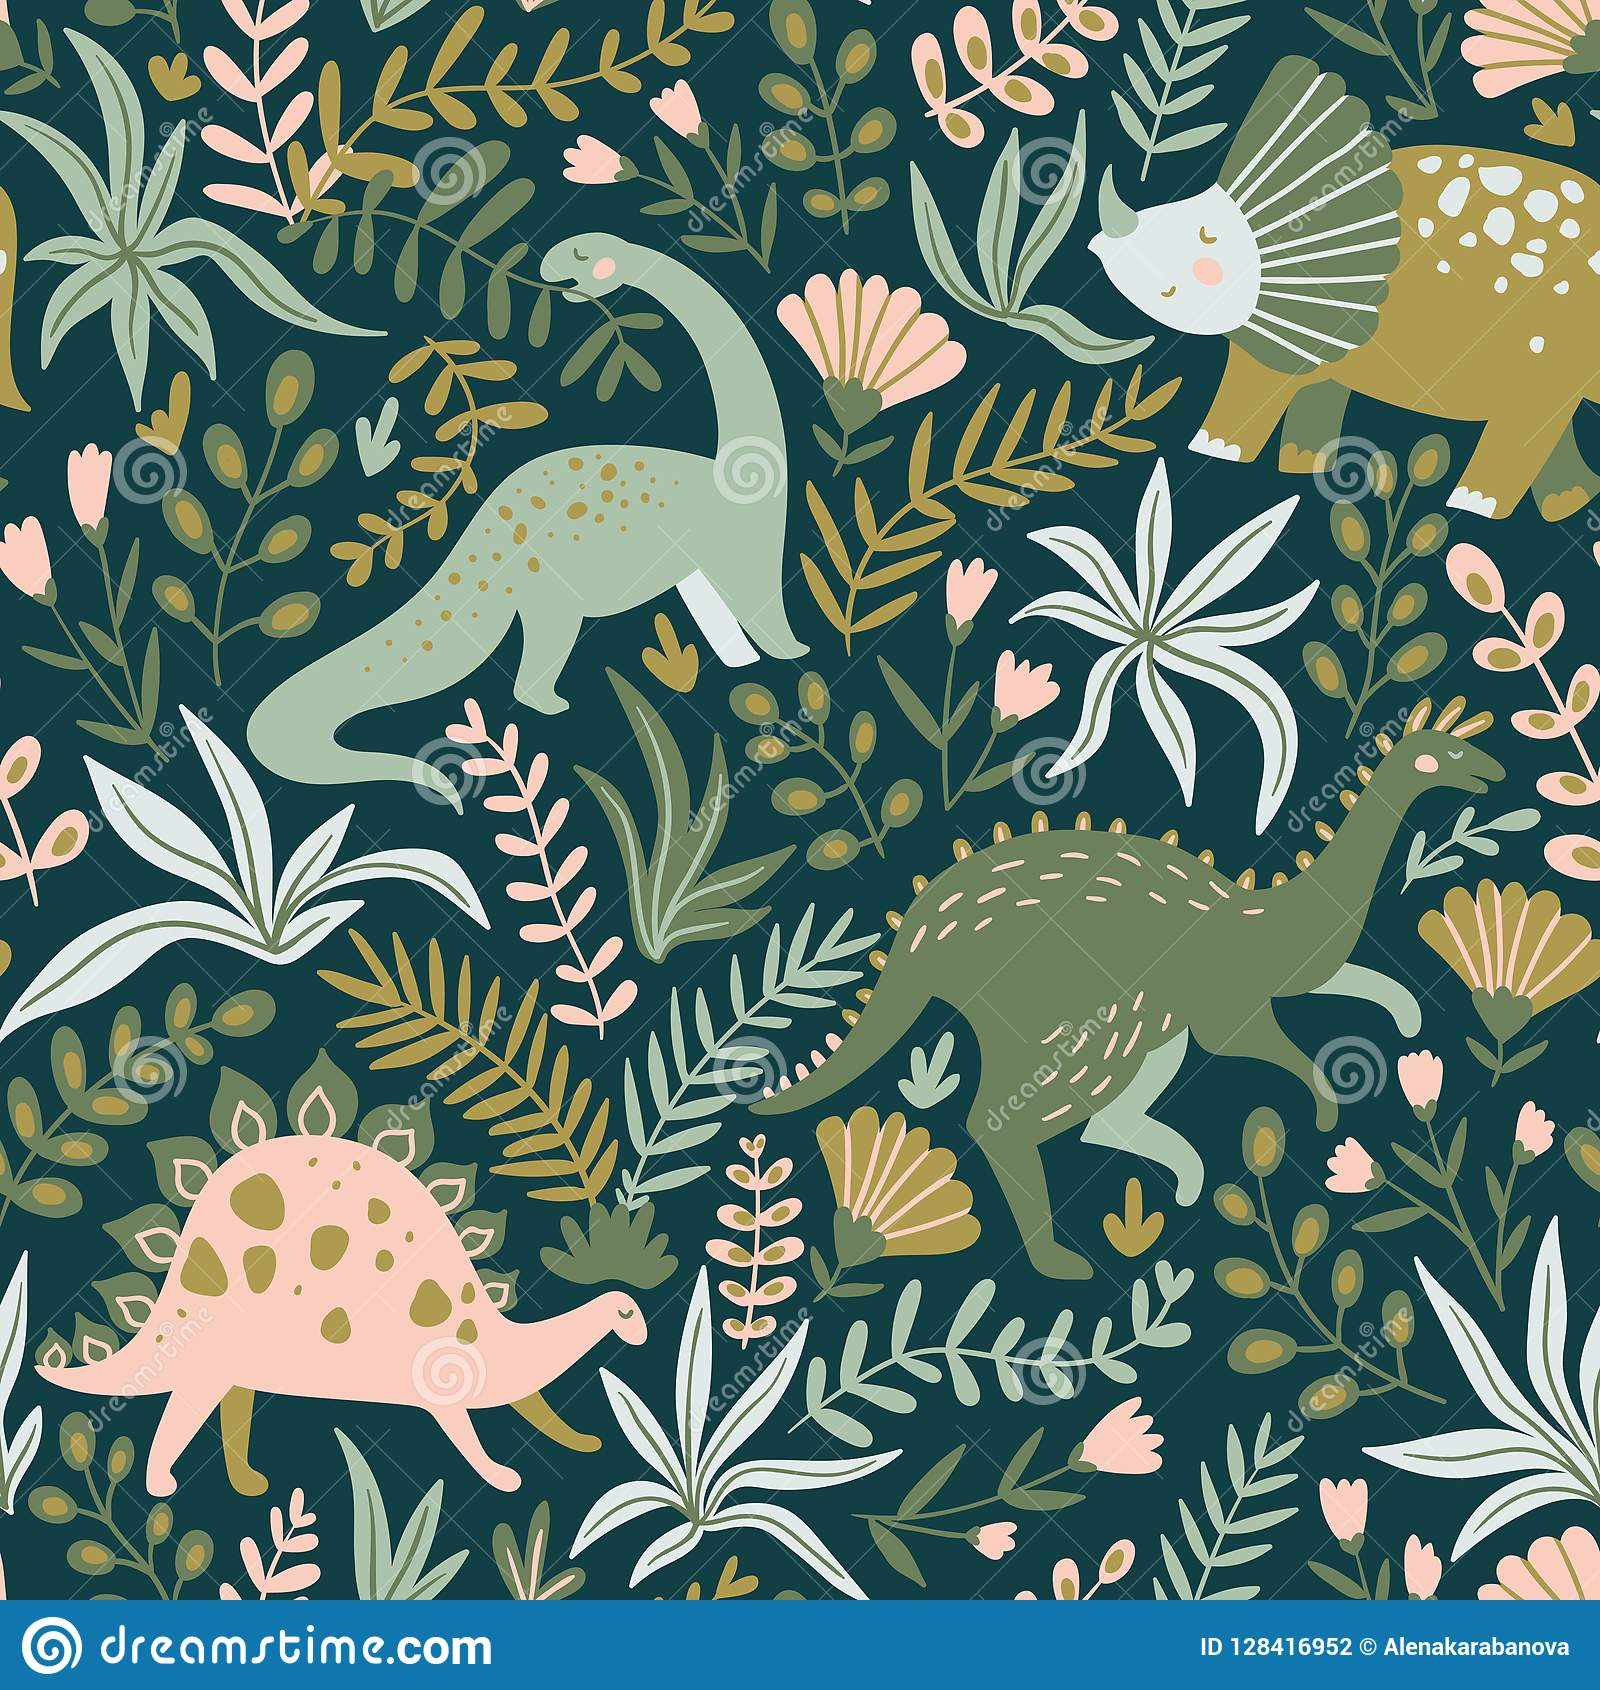 Hand drawn seamless pattern with dinosaurs and tropical leaves and flowers. Vector illustration.